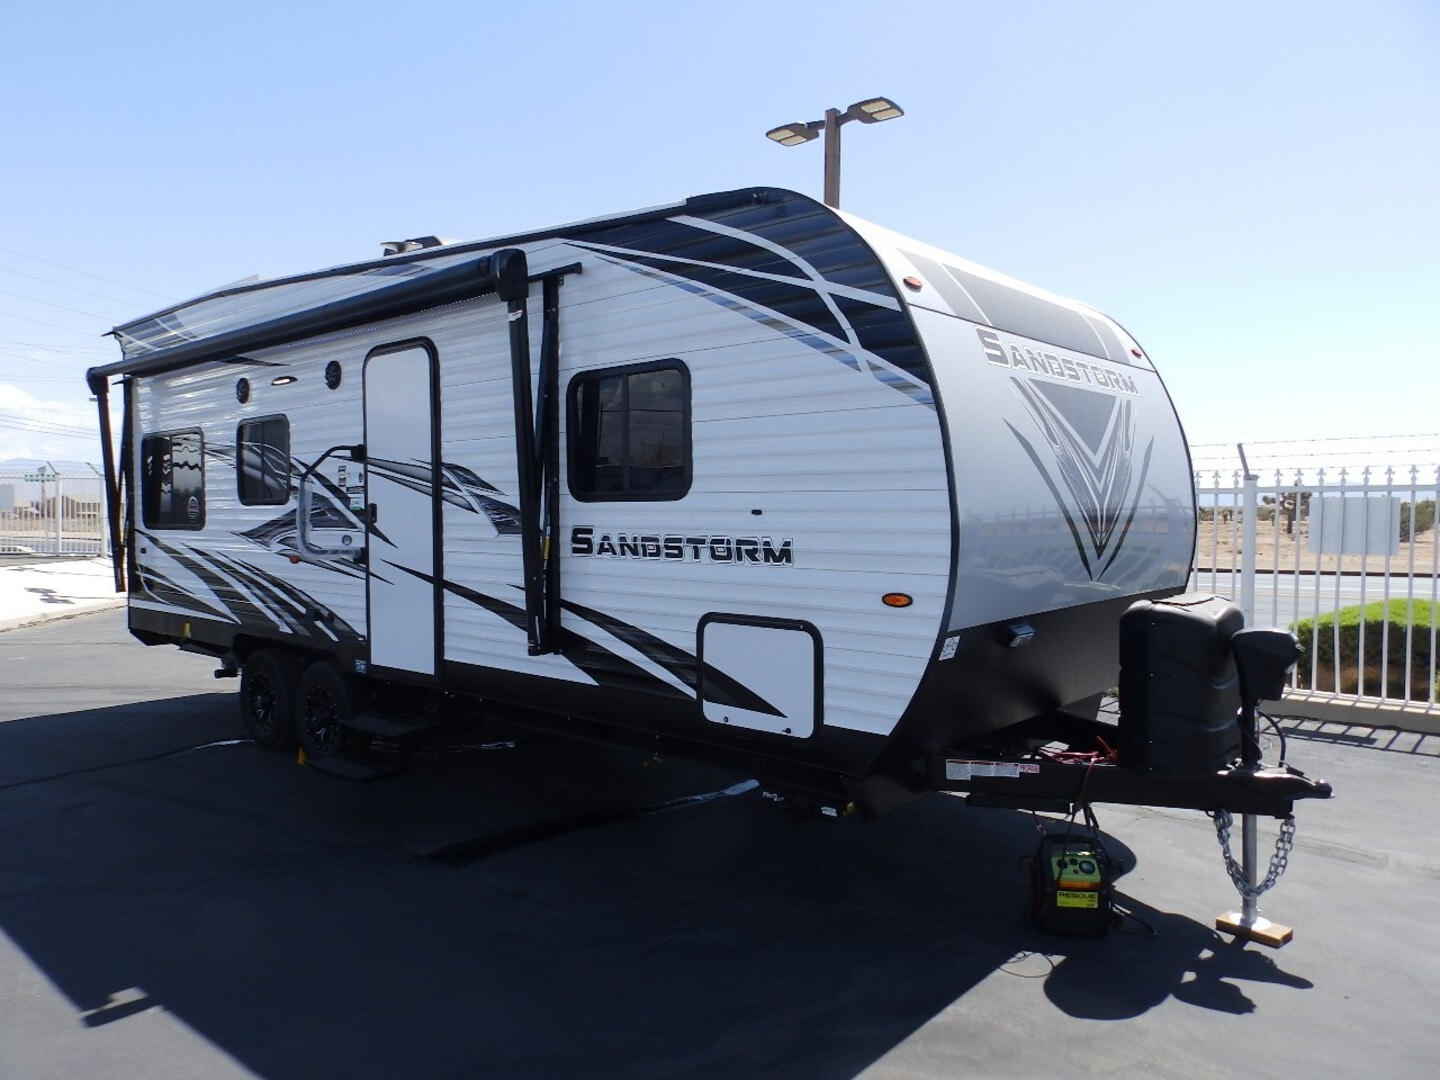 New, 2022, Forest River, SANDSTORM 211SLC, FRONT SLEEPER, SINGLE ELECTRIC BED, CAPTAIN CHAIRS, 260 WATT SOLAR PANEL, 4000 WATT GENERATOR, ARCTIC PACKAGE, Toy Haulers